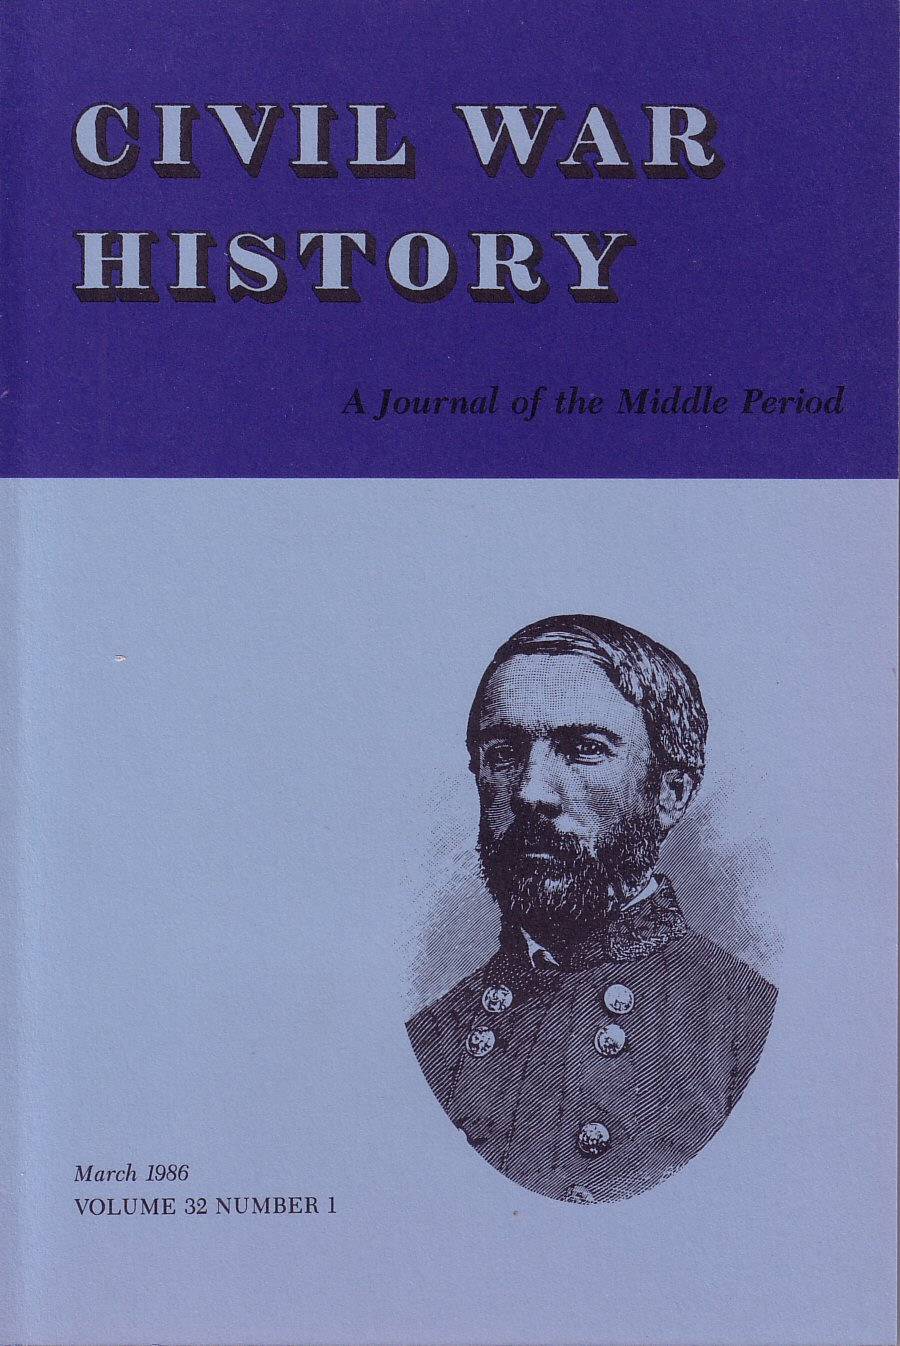 Civil War History, Volume 32, Number 1 (March 1986)